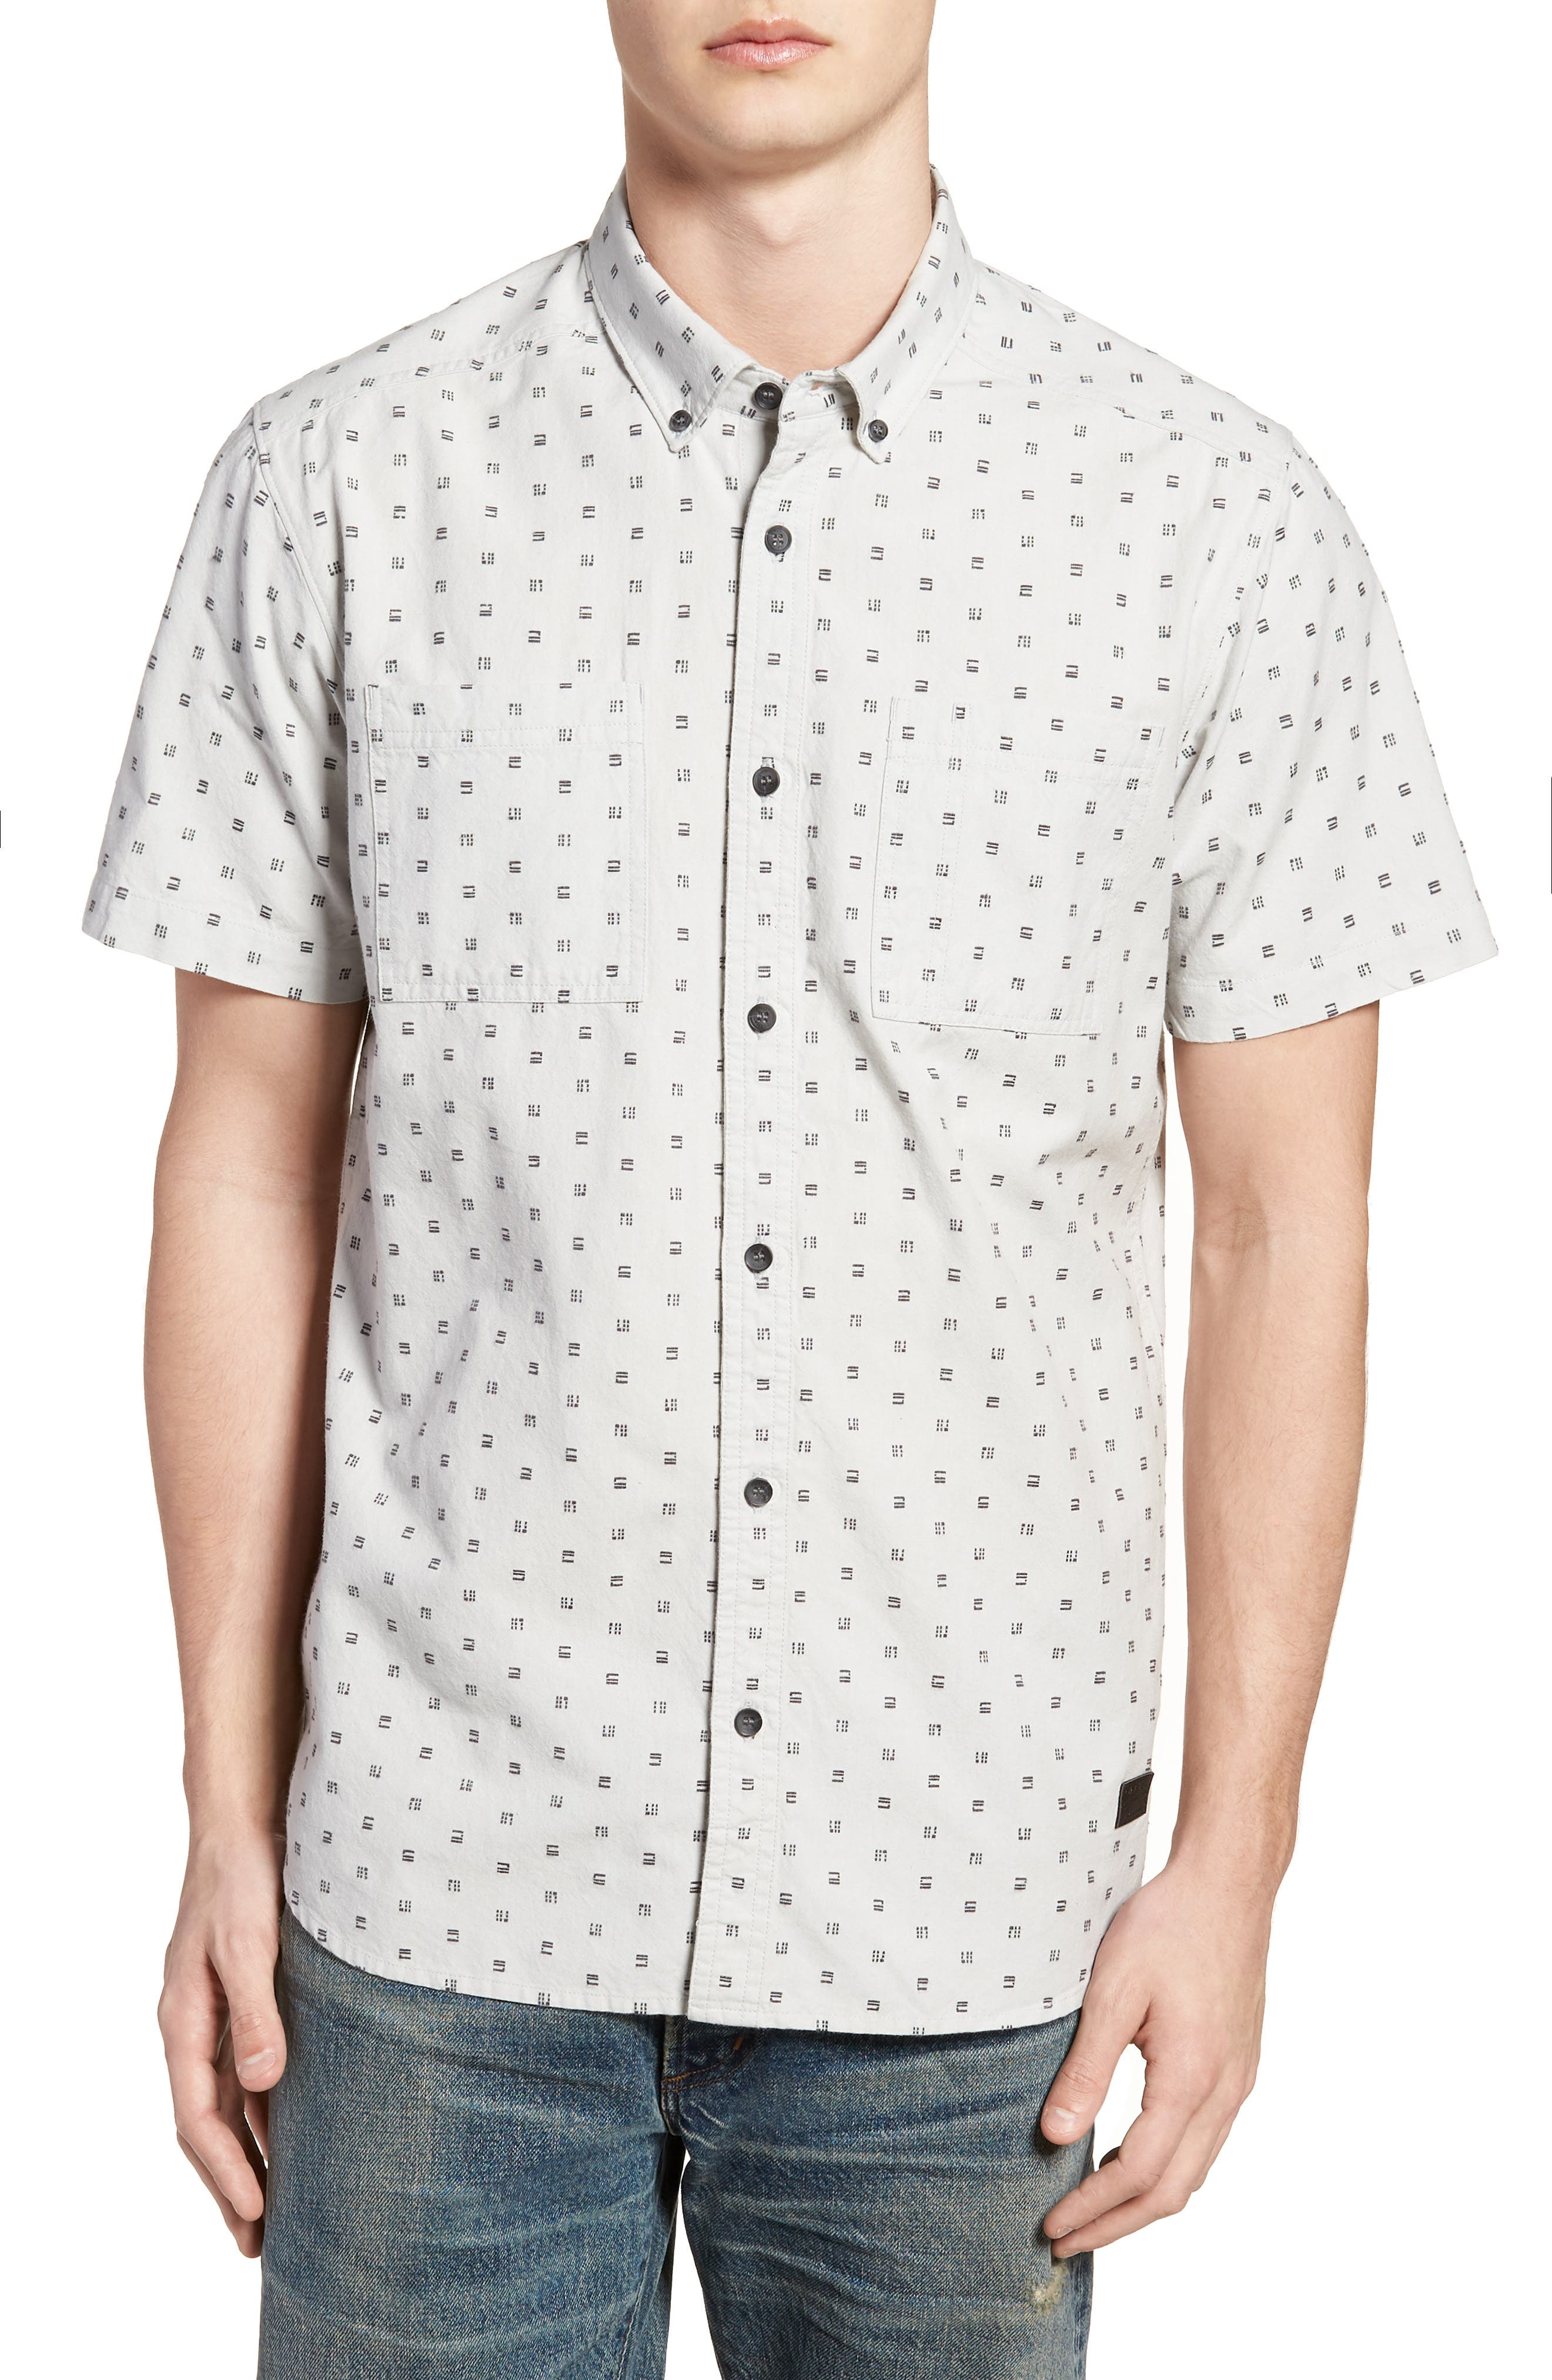 O'NEILL Fifty Two Short Sleeve Shirt, Main, color, 036